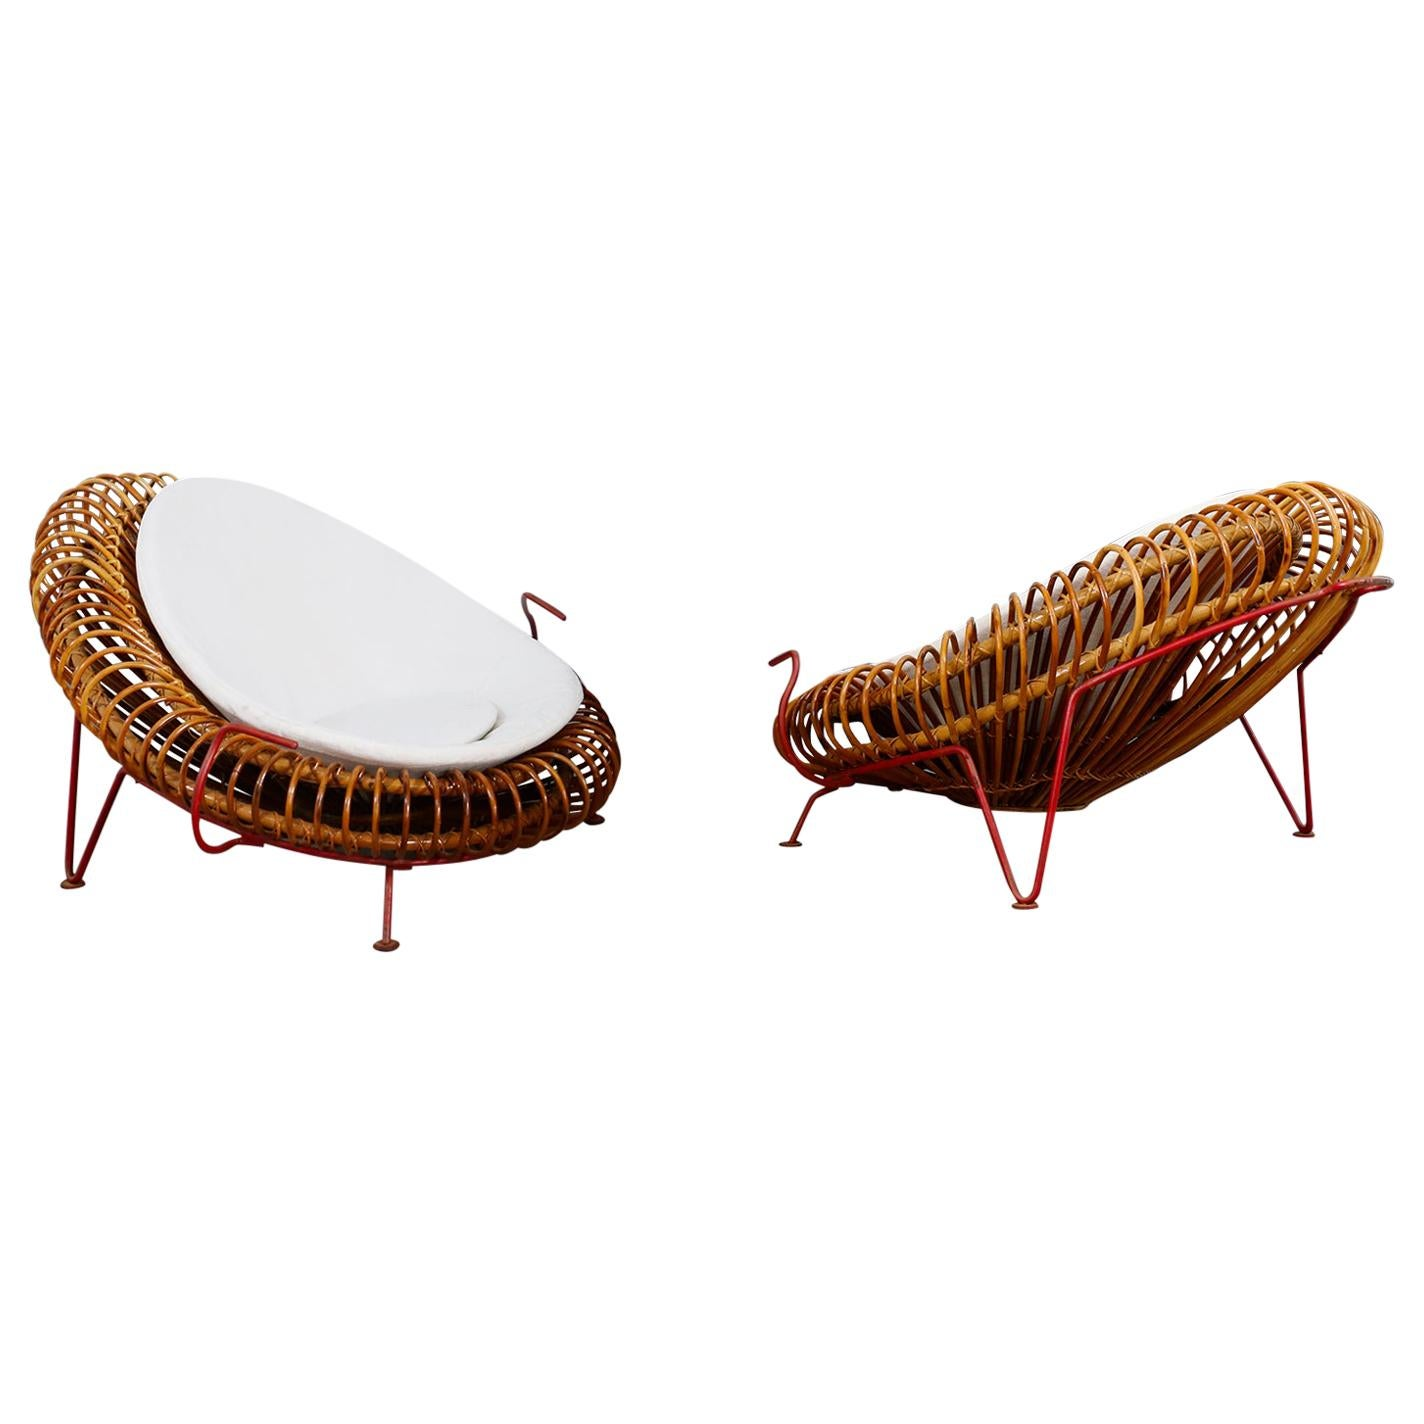 Rare Pair of Bamboo Armchairs Midcentury by Janine Abraham & Dirk Jan Rol, 1950s